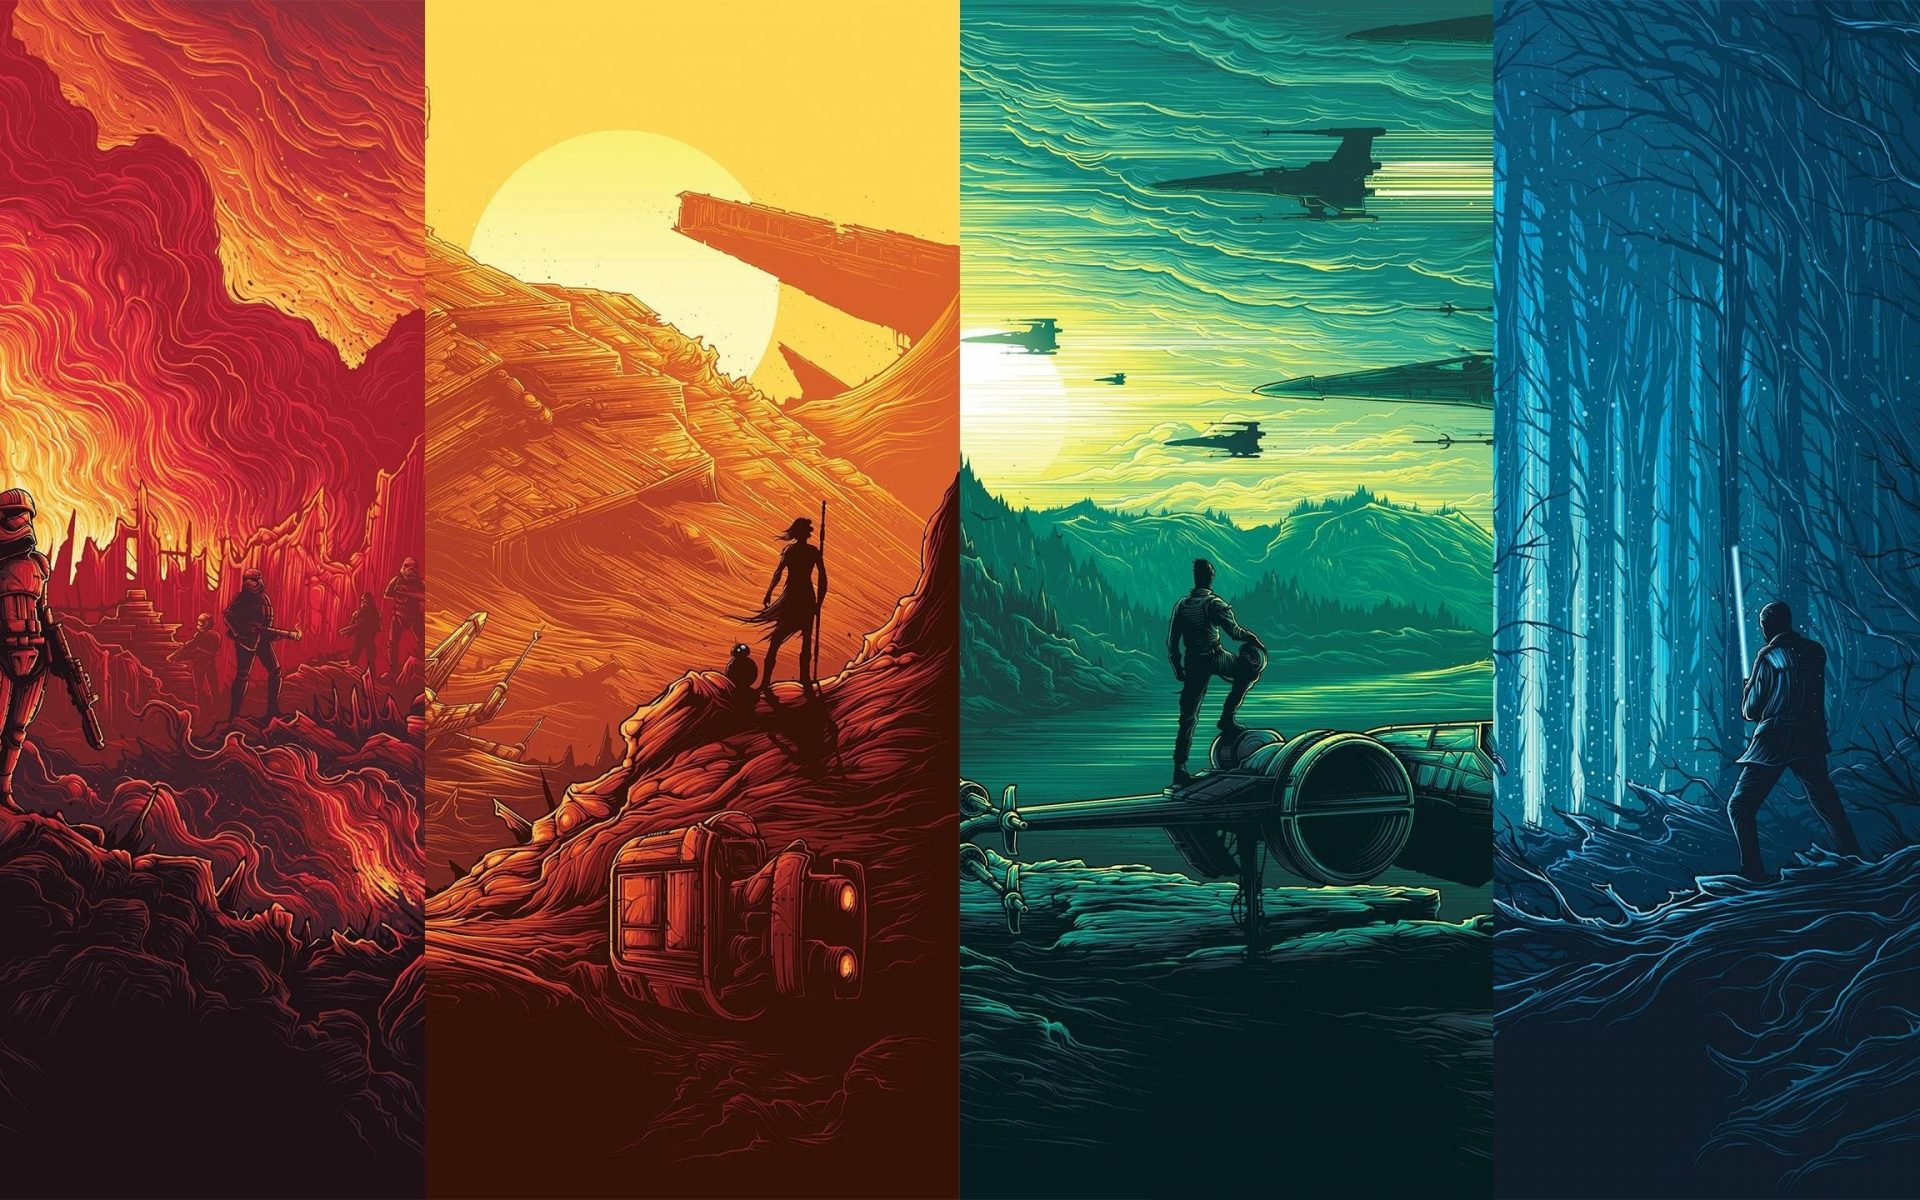 Star Wars Imax Posters Wallpaper Hd Wallpapers Hd Backgrounds Tumblr Backgrounds Images Pictures